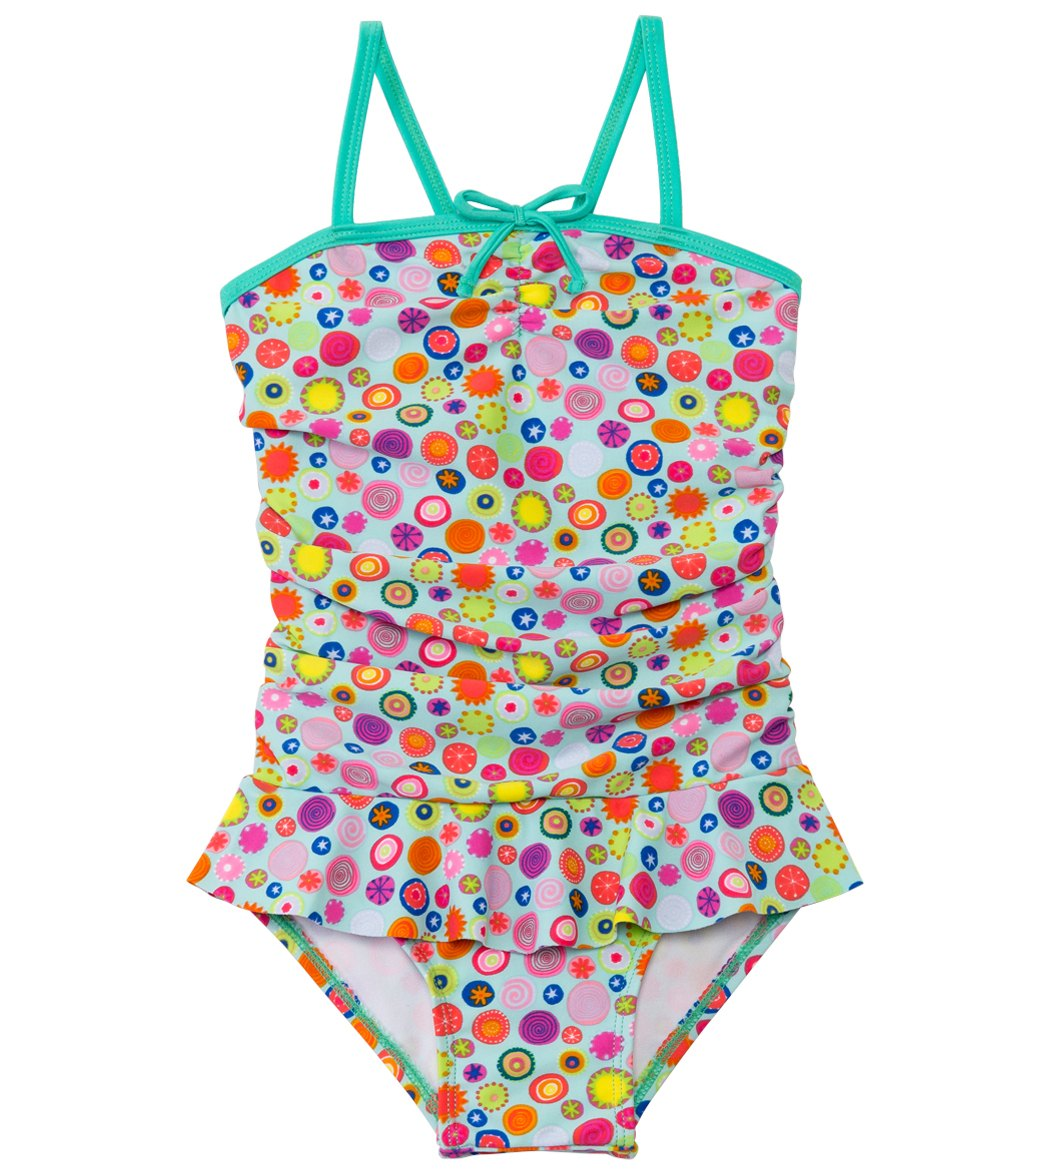 fbe6f92deab6b ... SnapMe Girls' Claire Doodle Ruffle One Piece (12mos-6yrs). Share